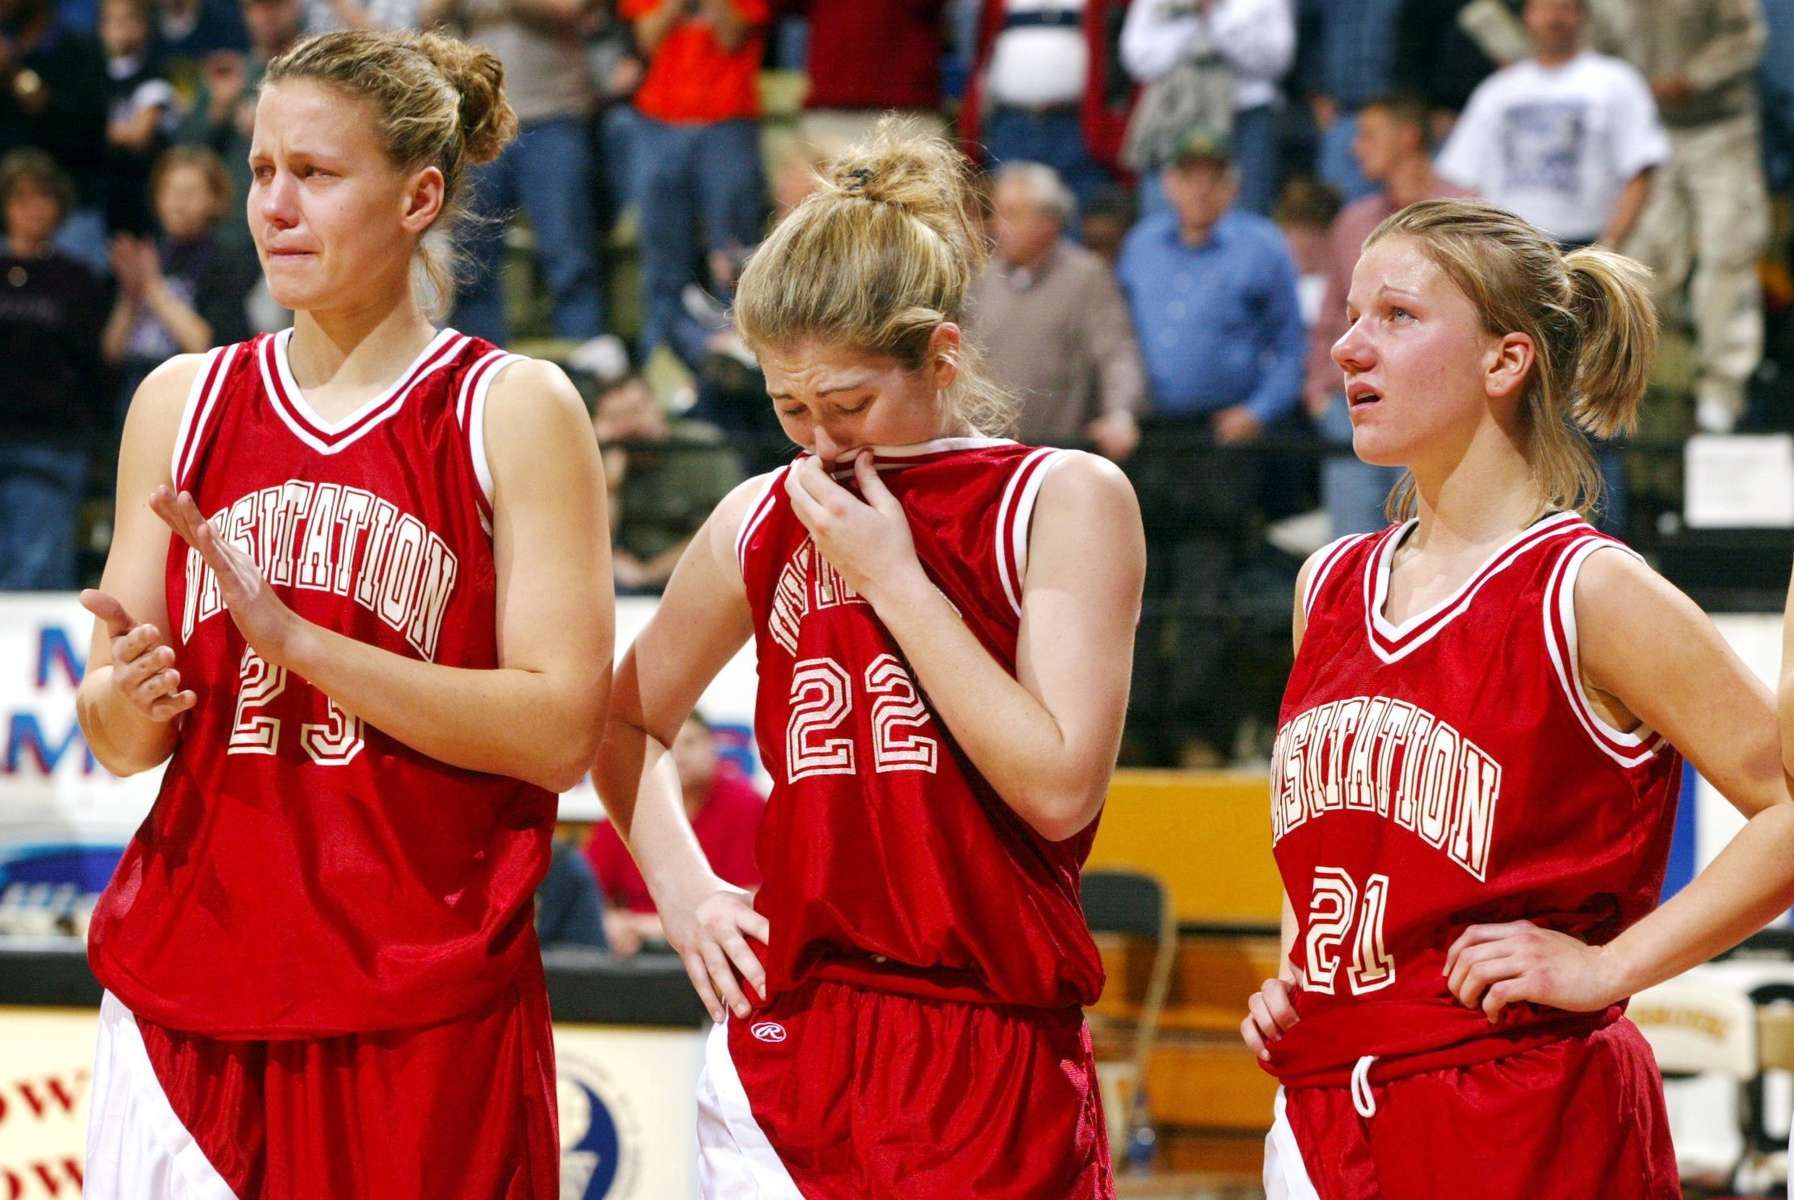 Saturday March 9, 2002--Visitation's Stephanie Anderson, left, Jenny Maurer, center, and Liz Stamborski wait to recieve their runners up medals  after losing to Notre Dame de Sion 63-46 in the Missouri State High School Activities Association Basketball Championships Class 3a Championship game in Columbia on Saturday.Photo By David Carson/PD